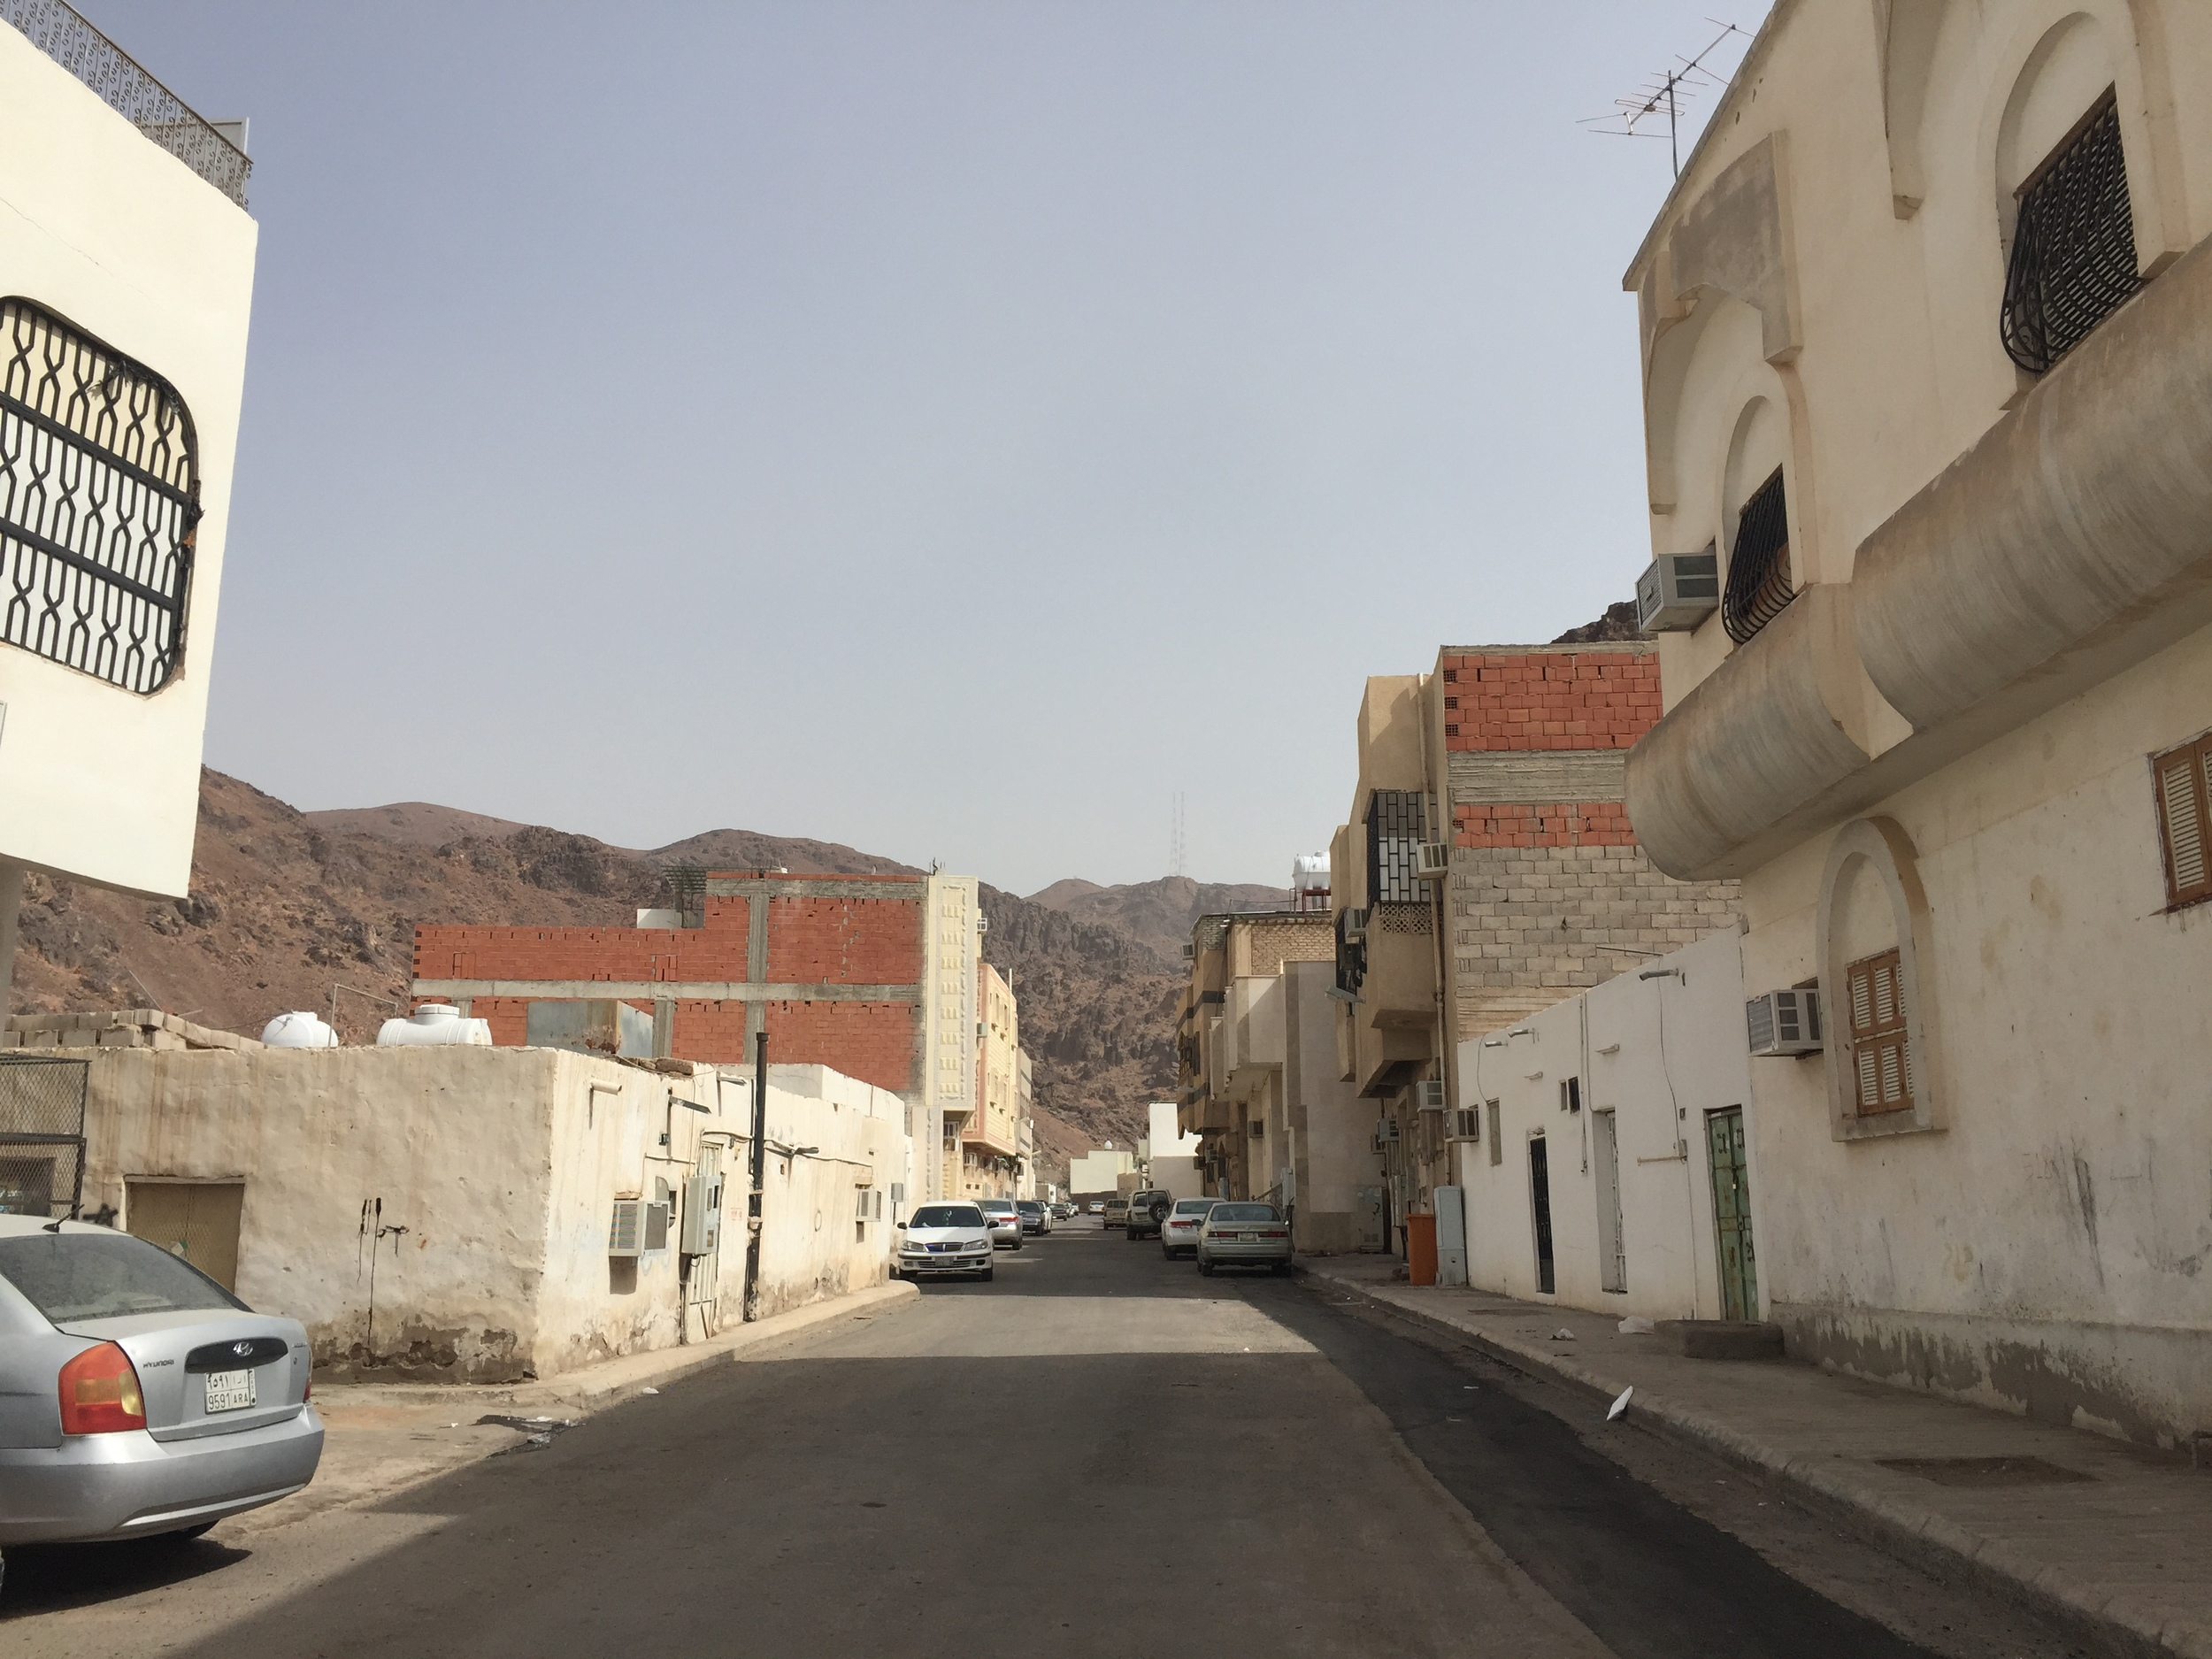 A glimpse in the back streets of Medina